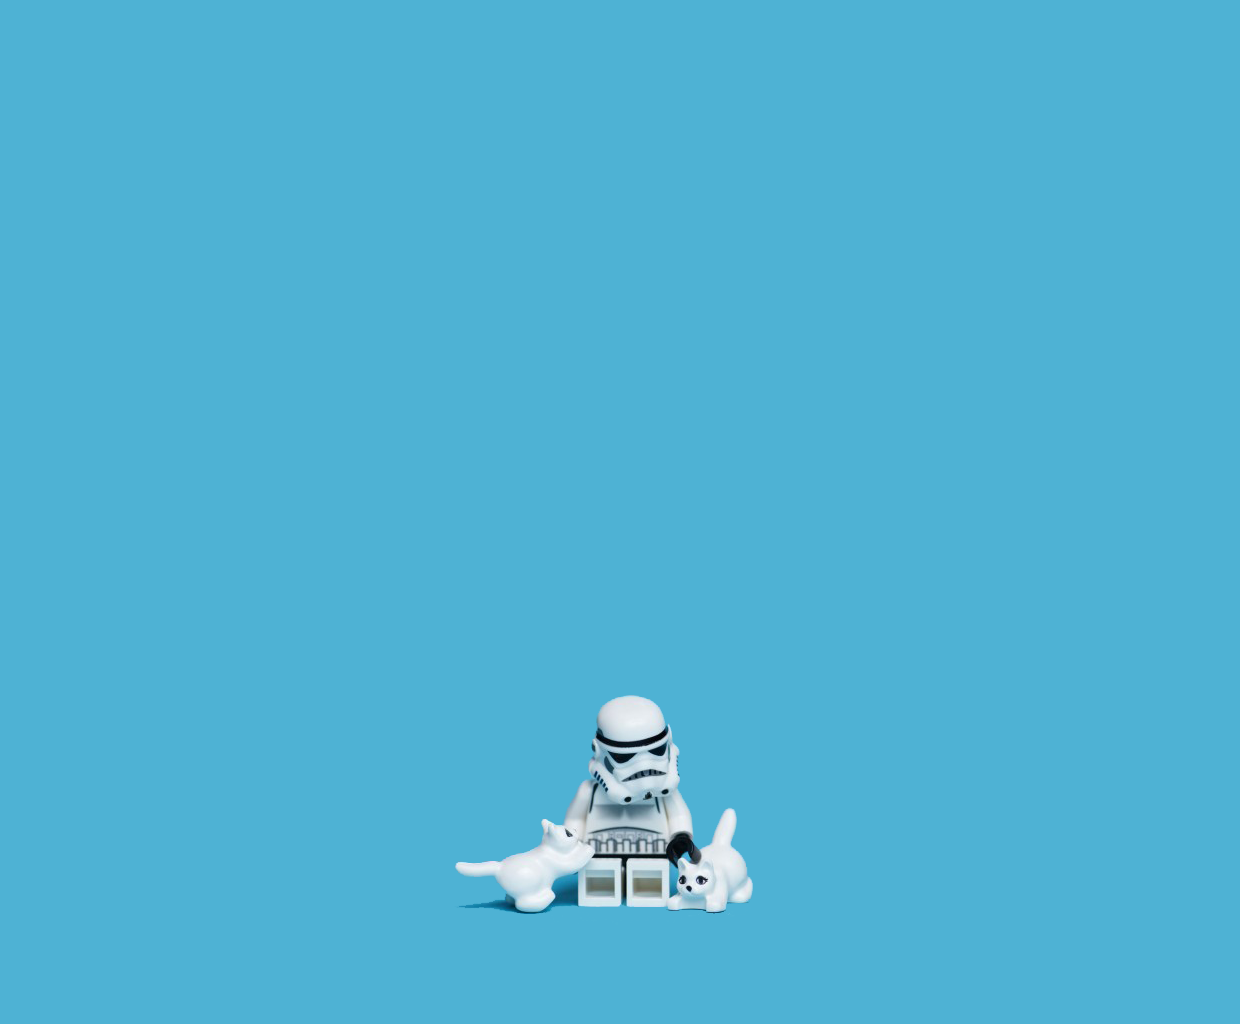 Funny Star Wars Wallpapers Star Wars 1368871 Hd Wallpaper Backgrounds Download